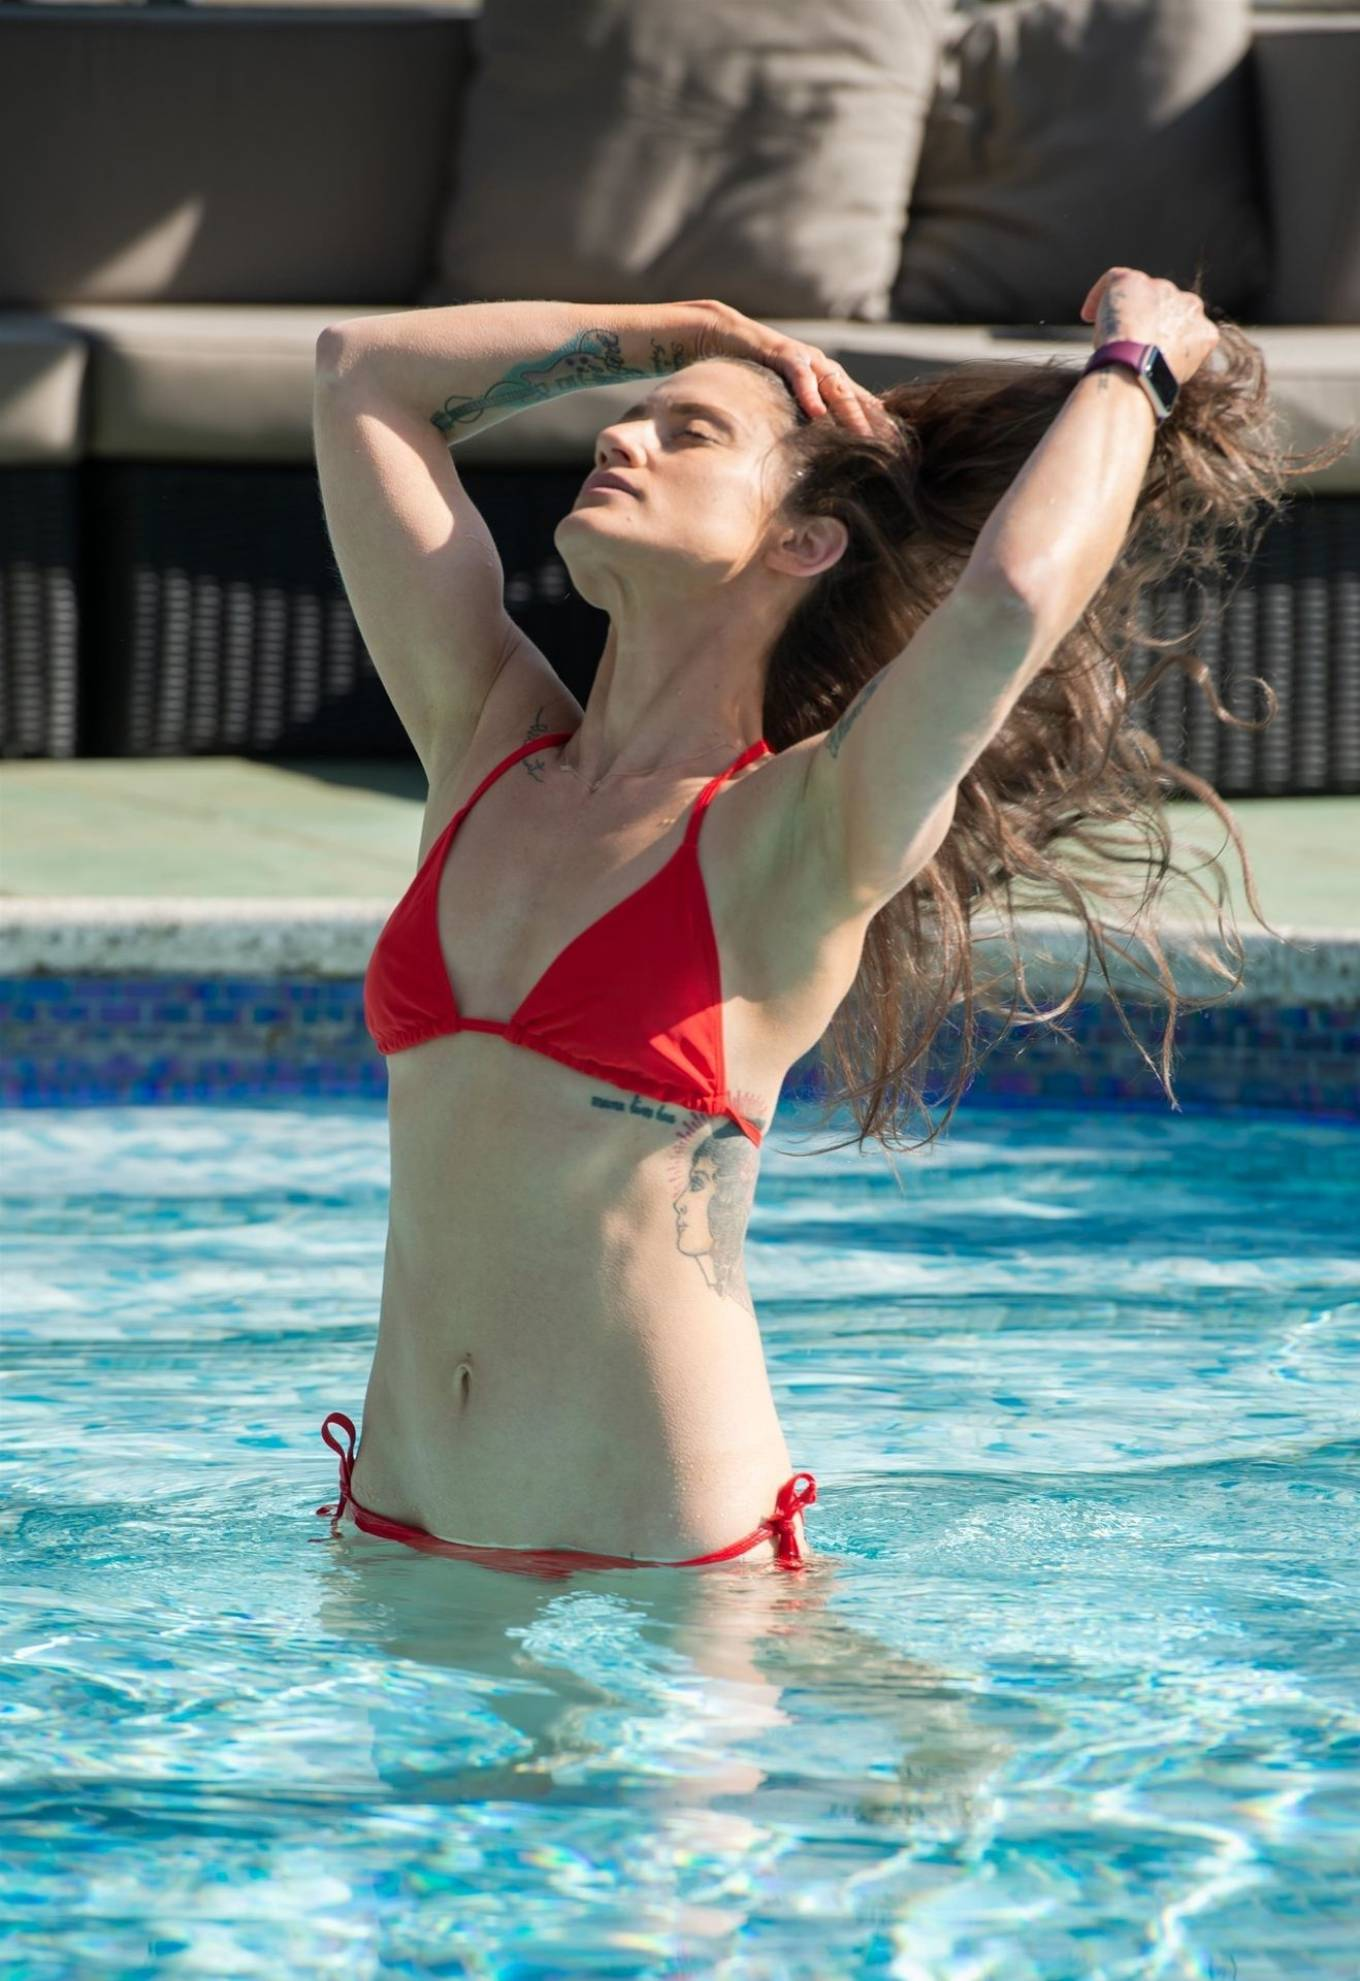 Katie Waissel - In red bikini at a pool during holidays in Italy